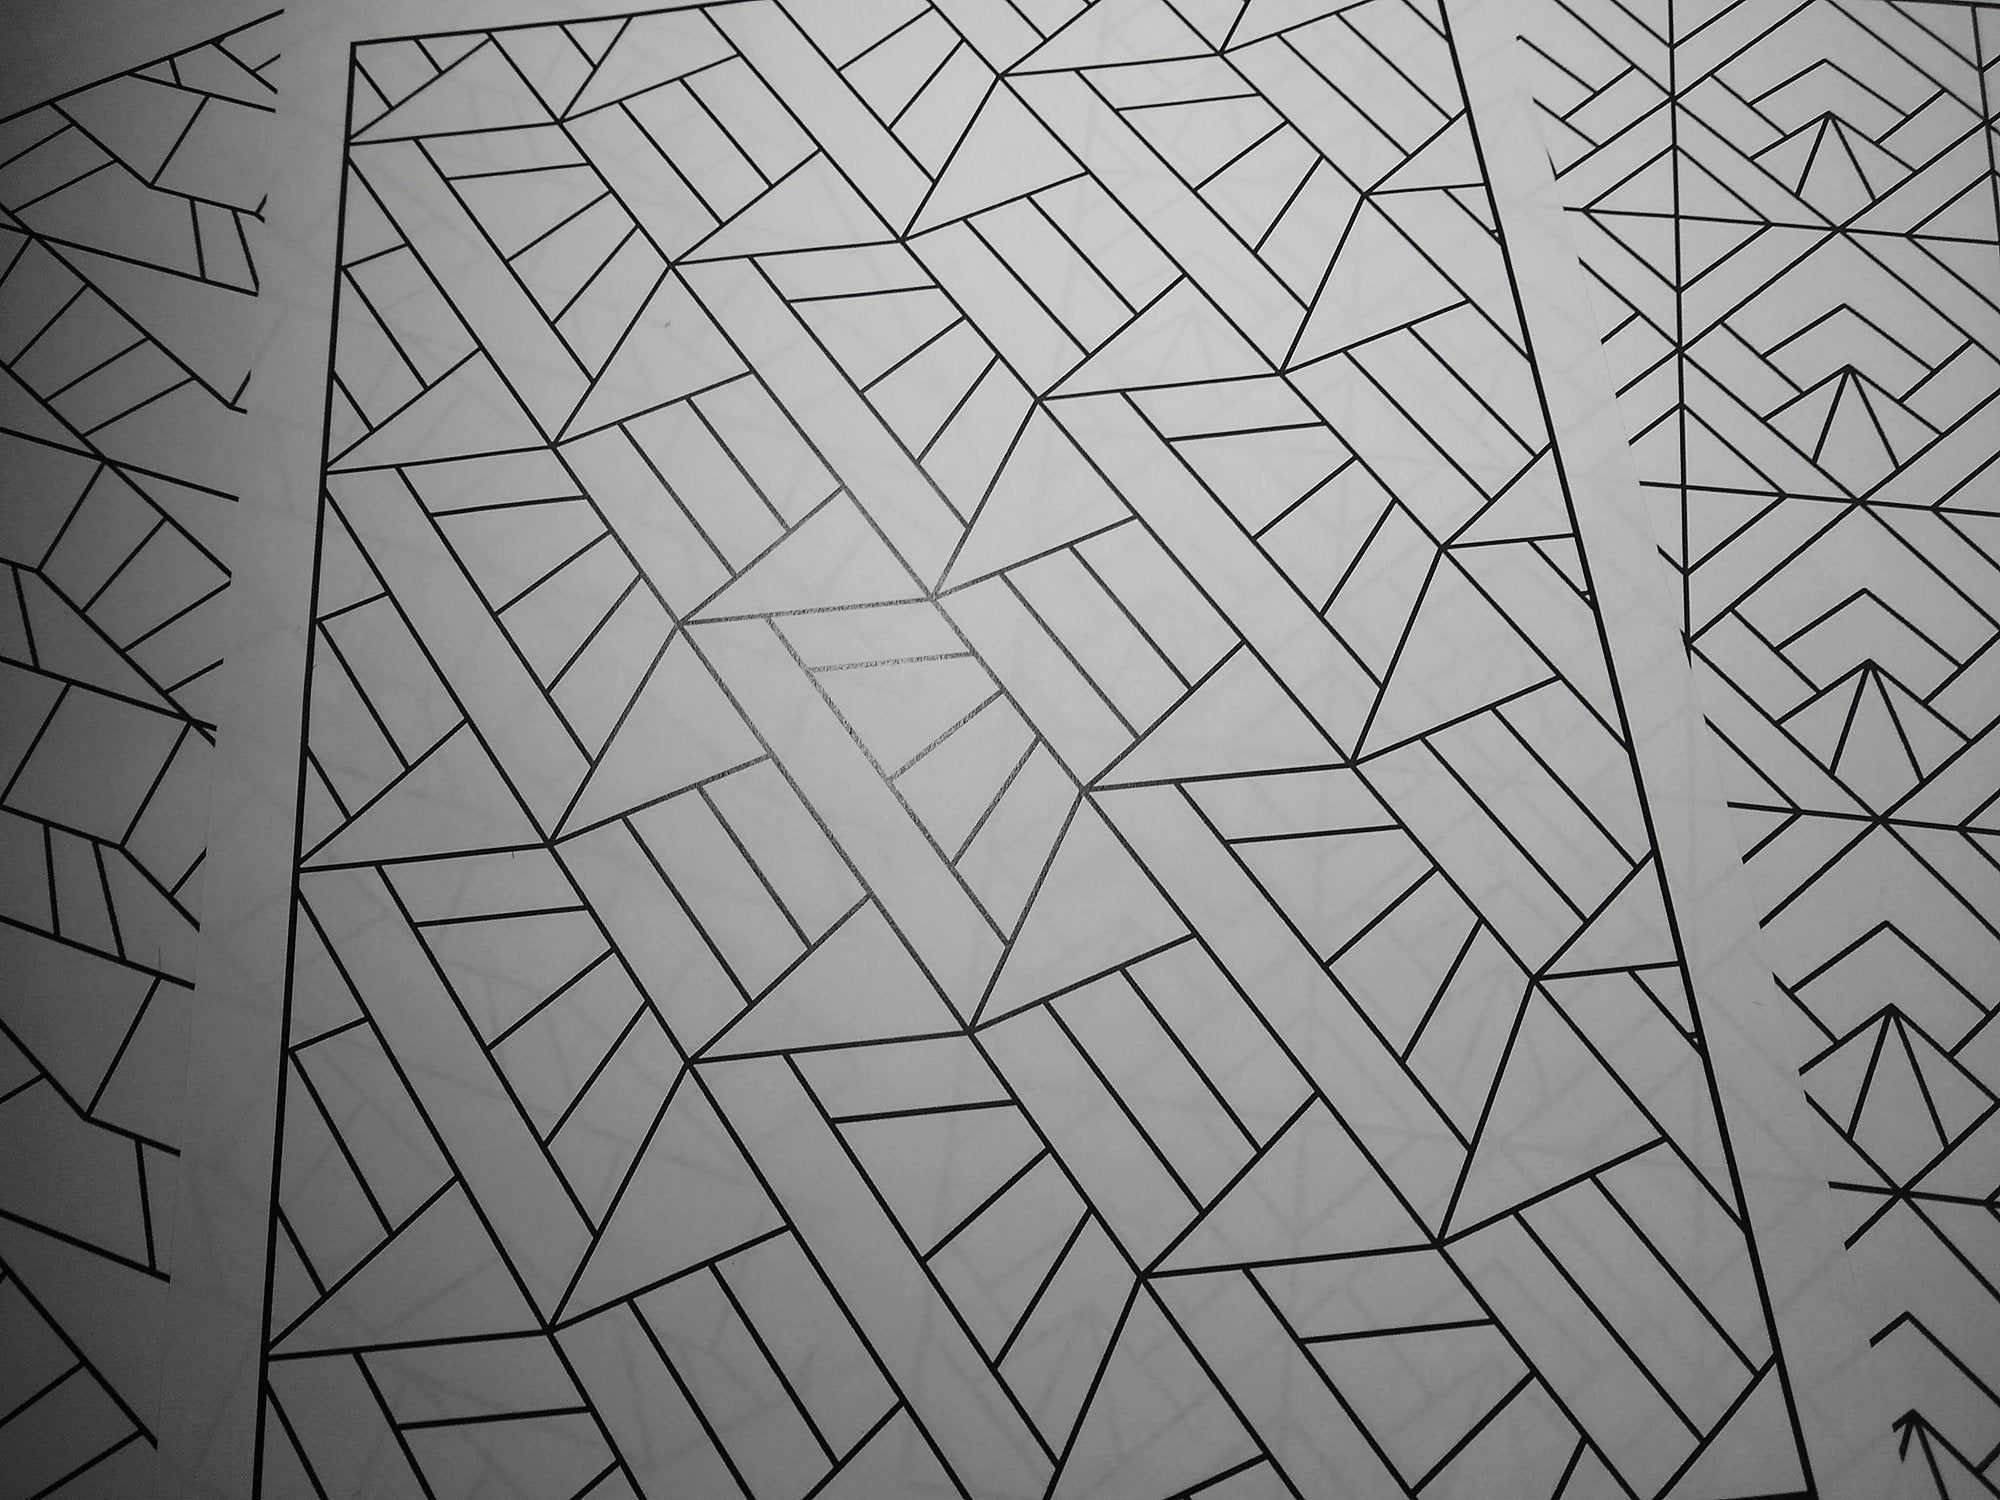 Pdf Geometric Tessellations 30 Adult Colouring Pages With Simple